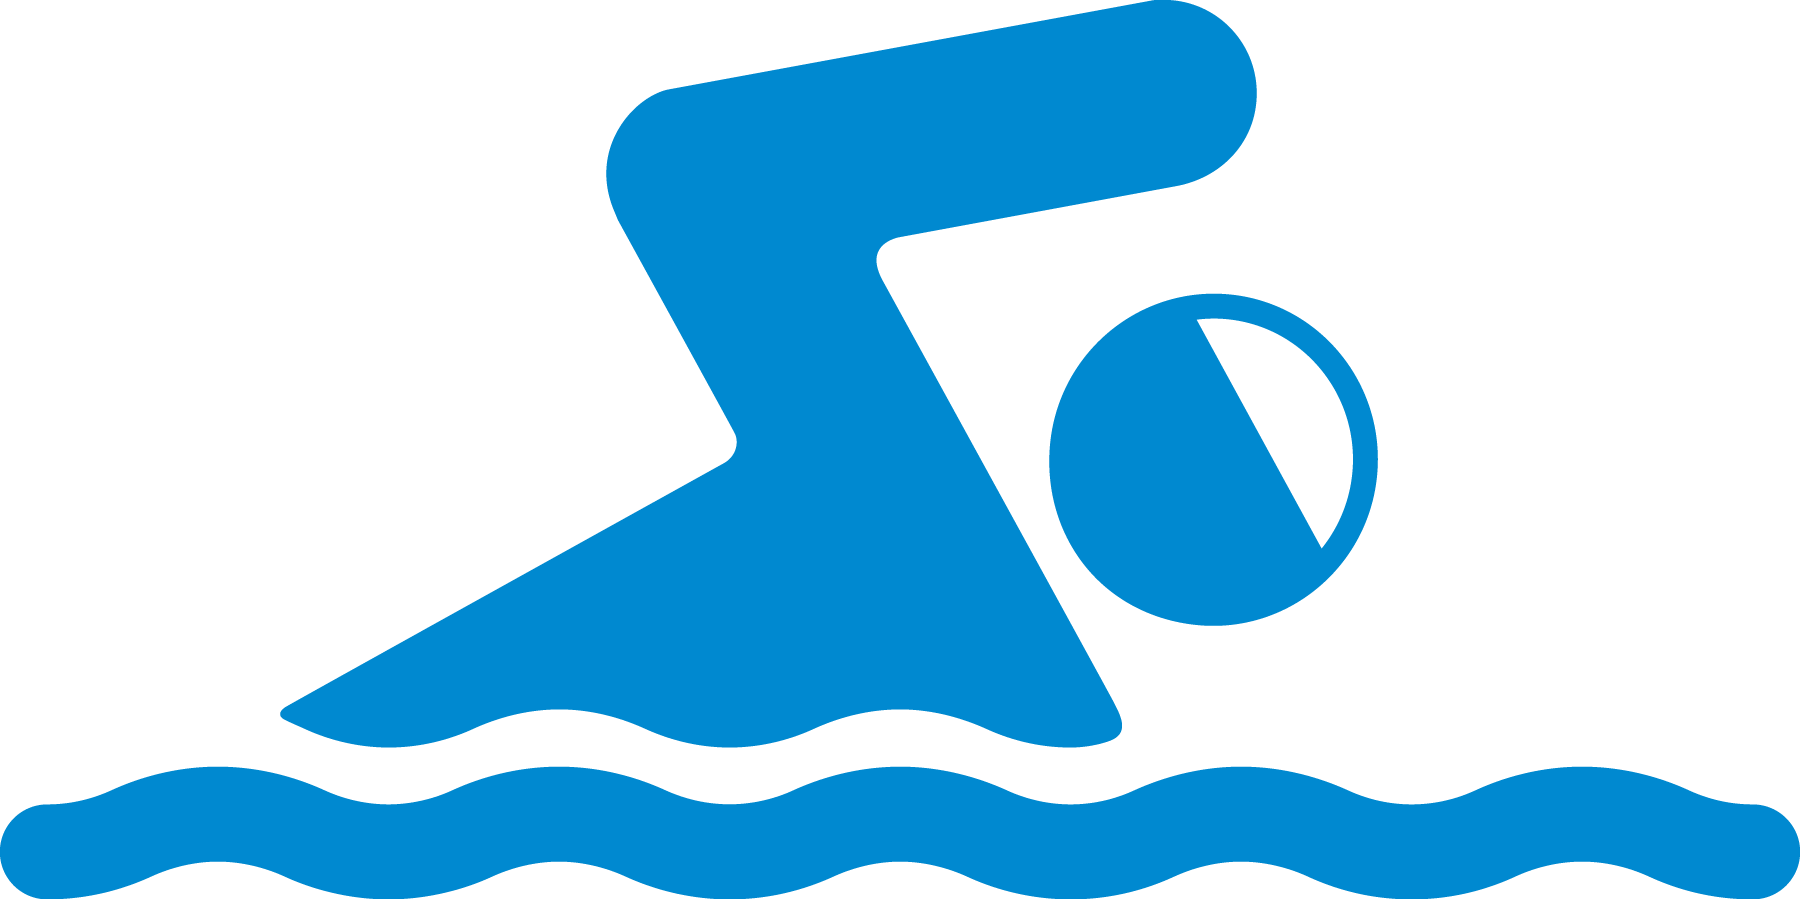 http://mtrymca.org/sites/mtrymca.org/assets/images/events/swimmer_blu_rgb.png